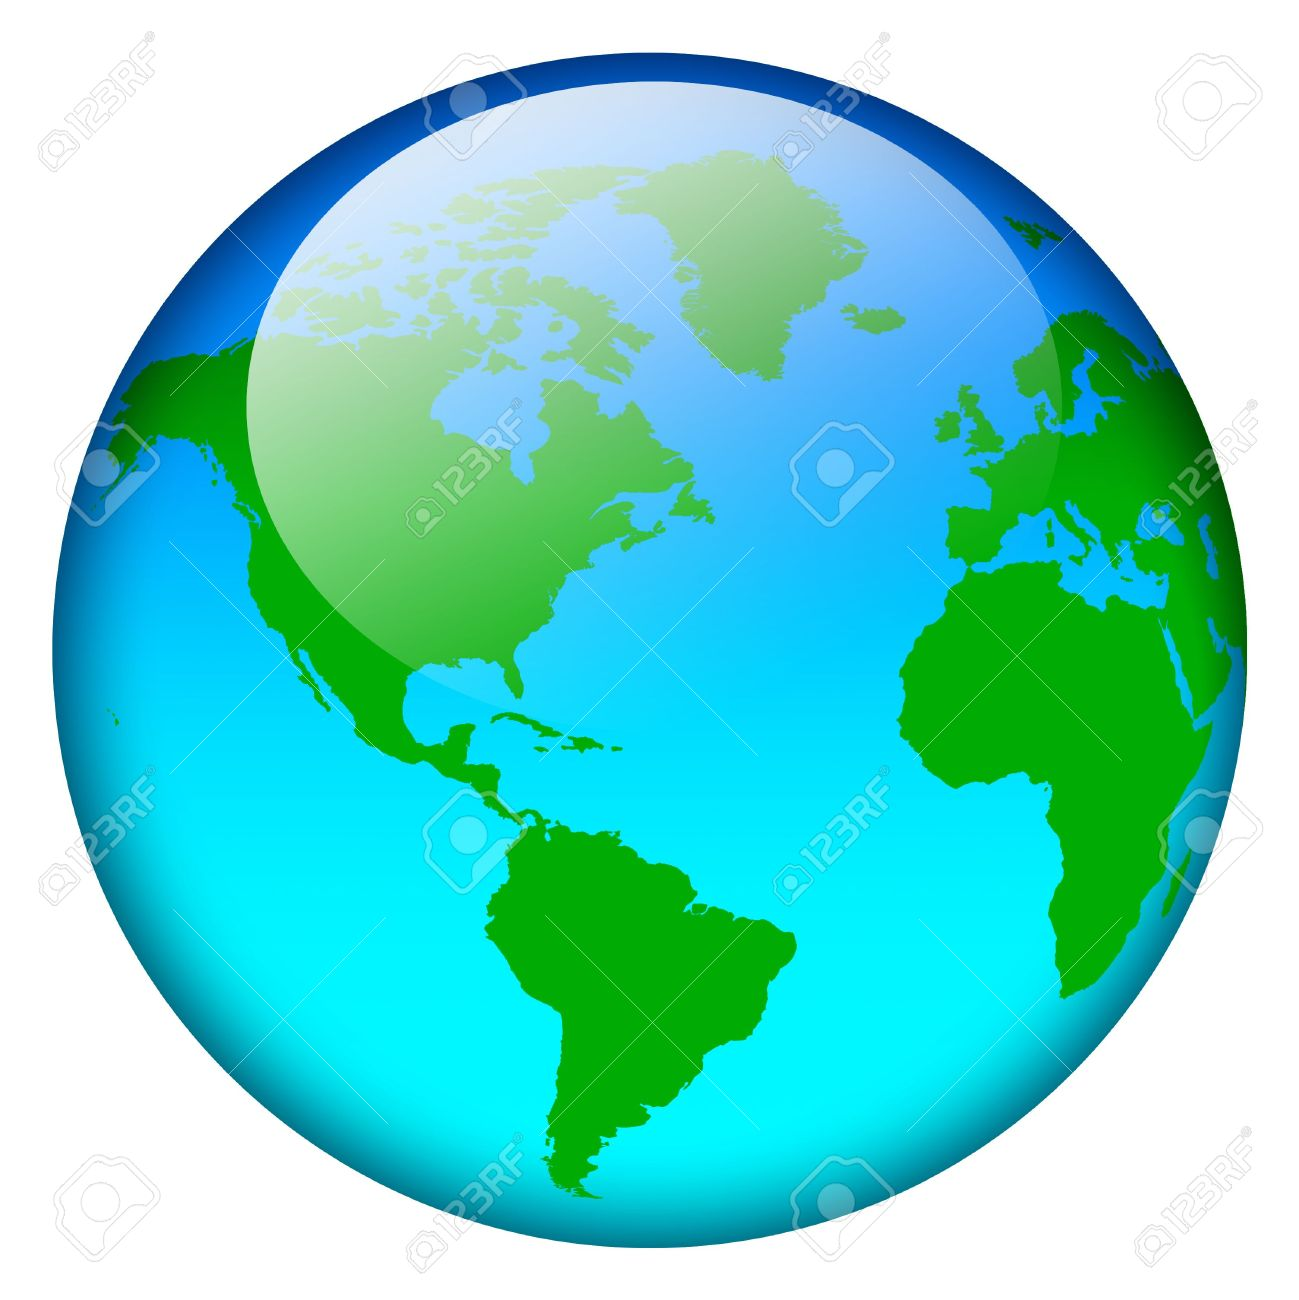 World map round clipart svg download Blue World Map Globe Stock Photo, Picture And Royalty Free Image ... svg download